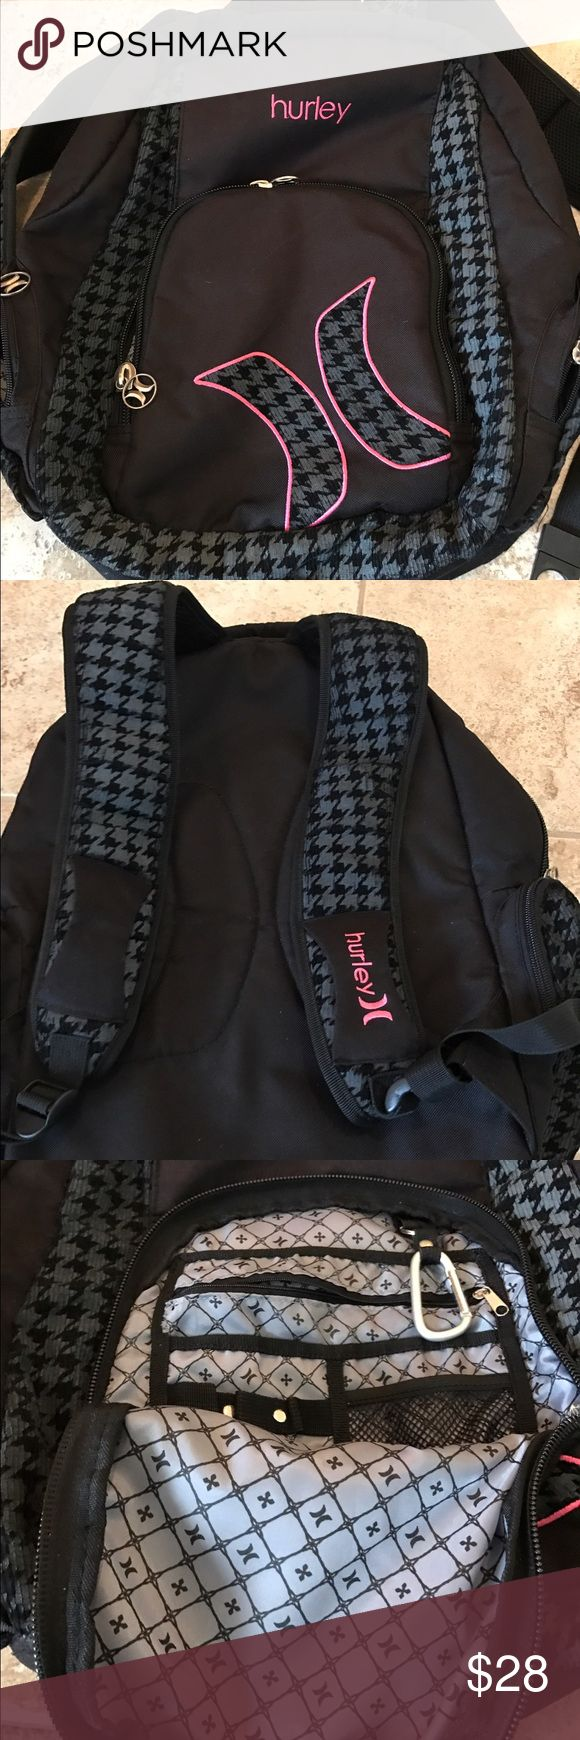 Excellent condition Hurley backpack Excellent condition Hurley backpack with nine pockets very roomy Hurley Other